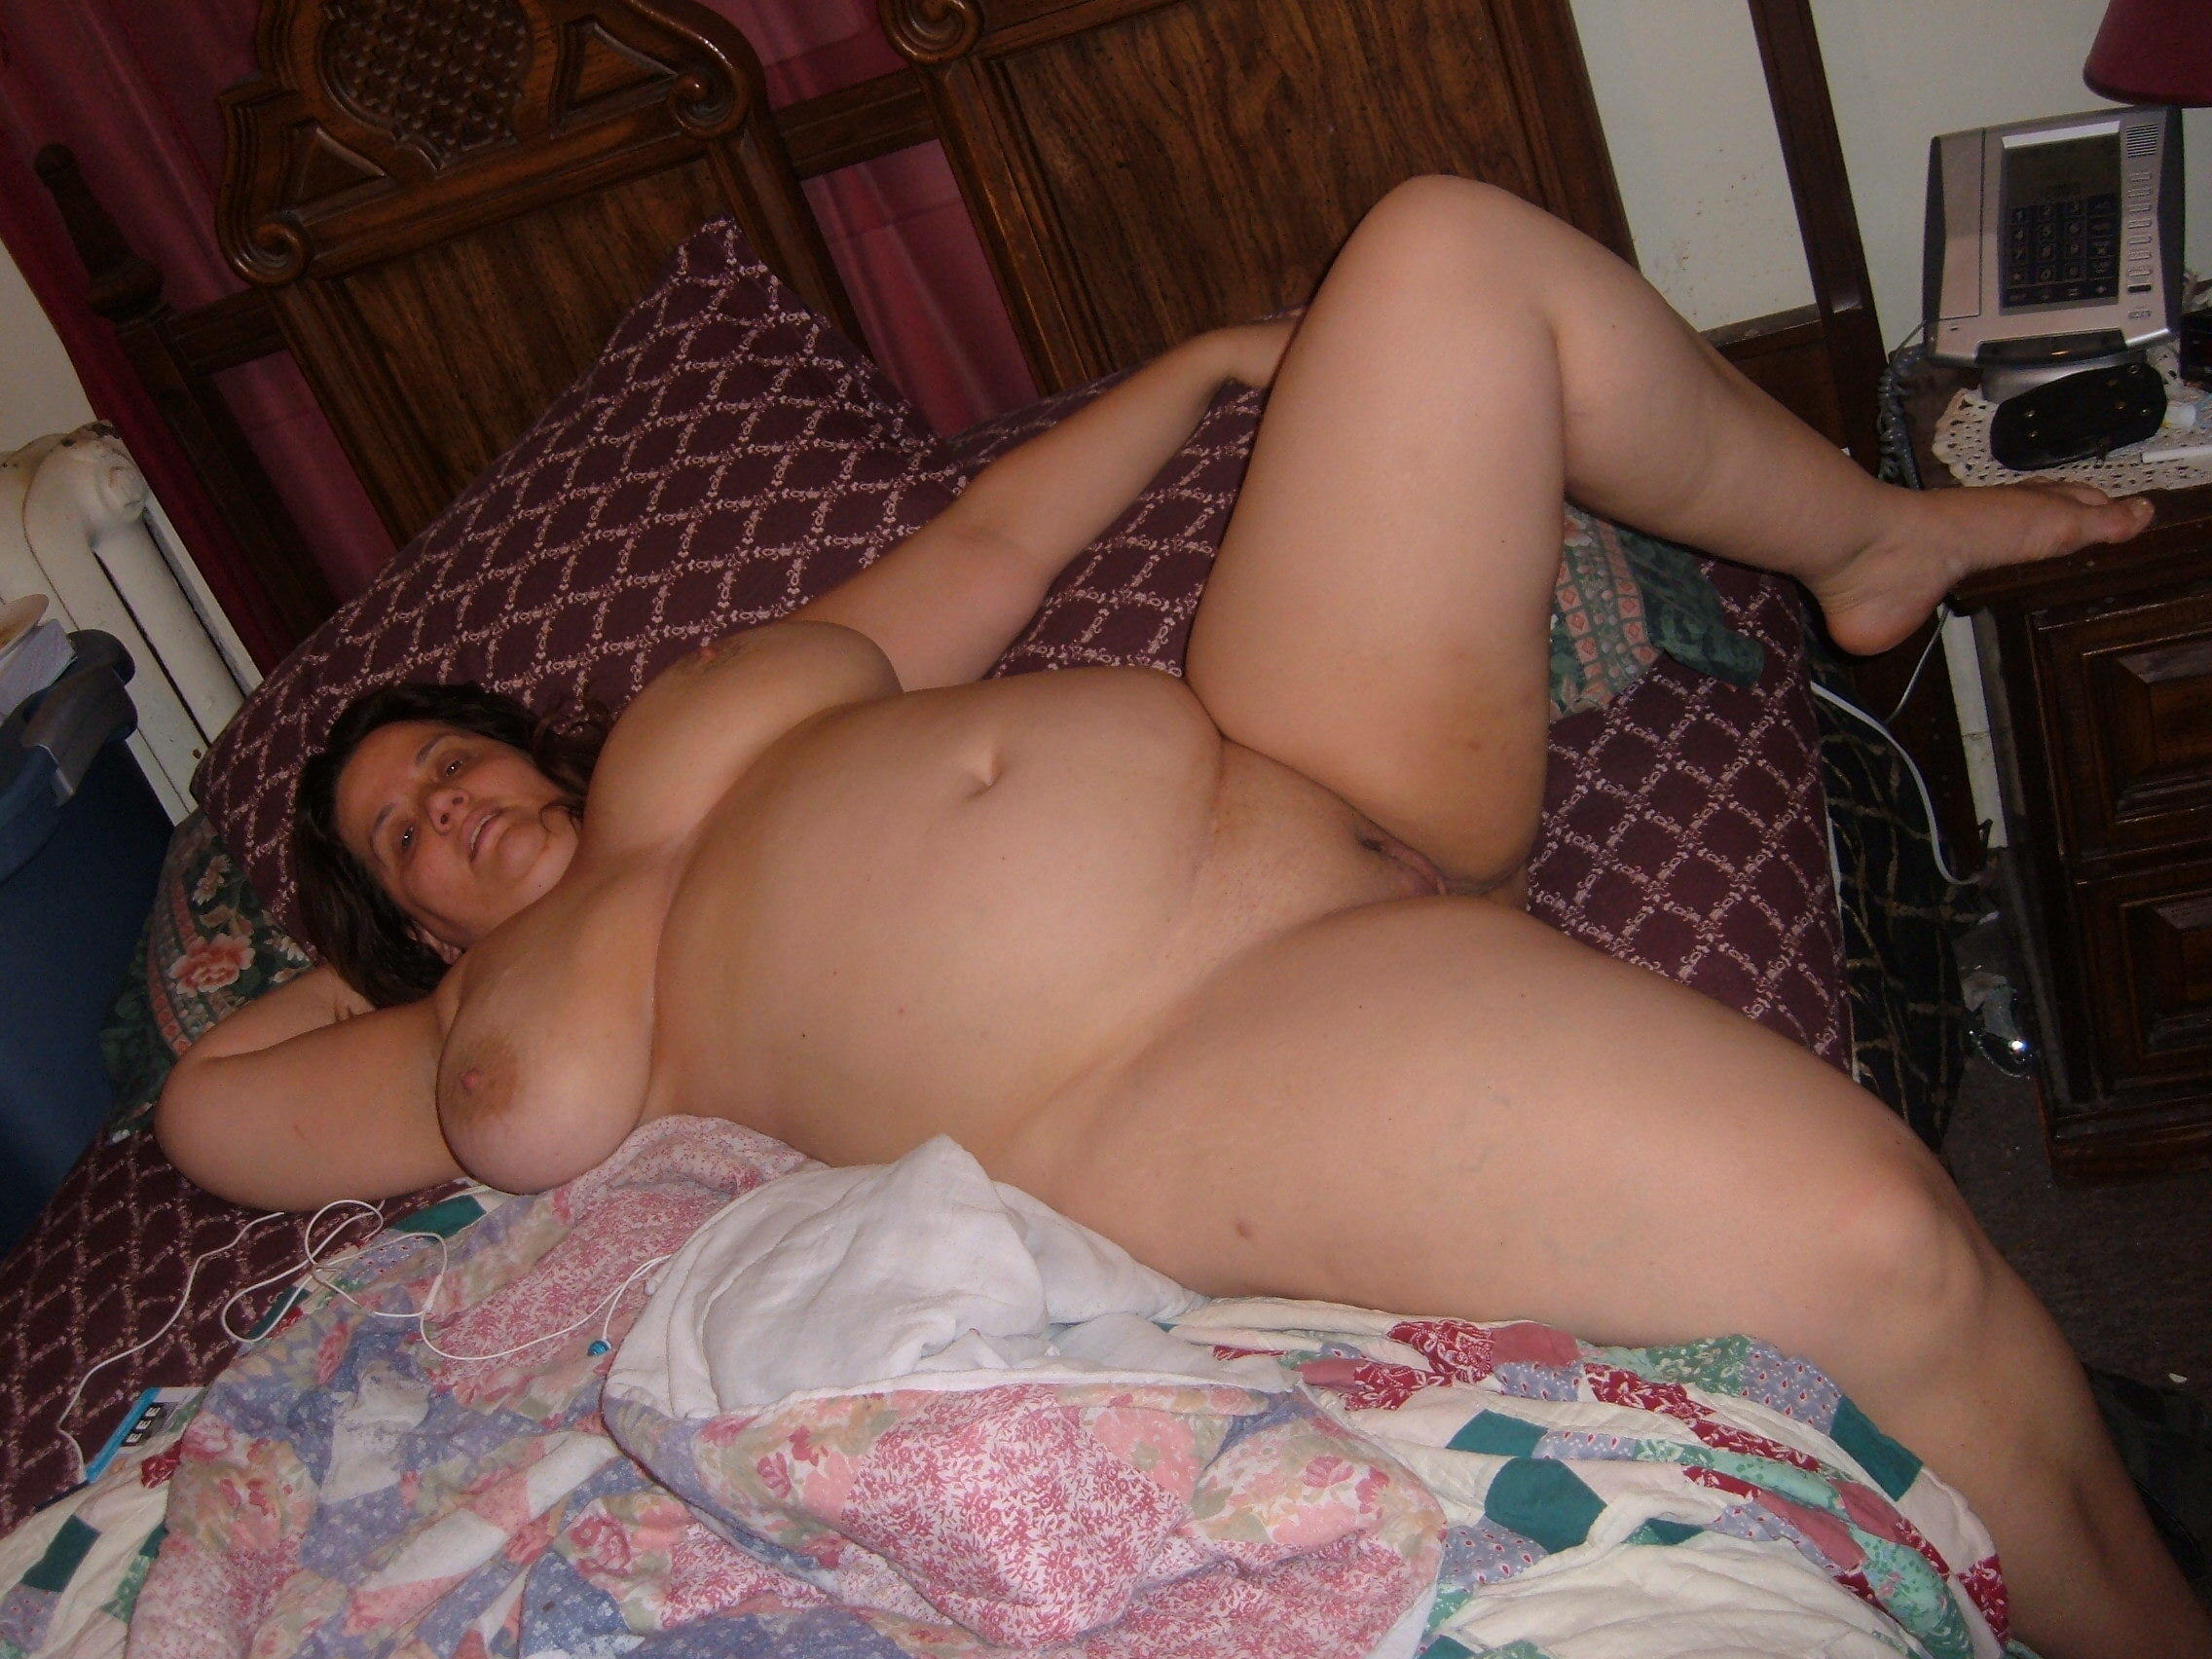 BBW wife with saggy droopy tits collection Image 5